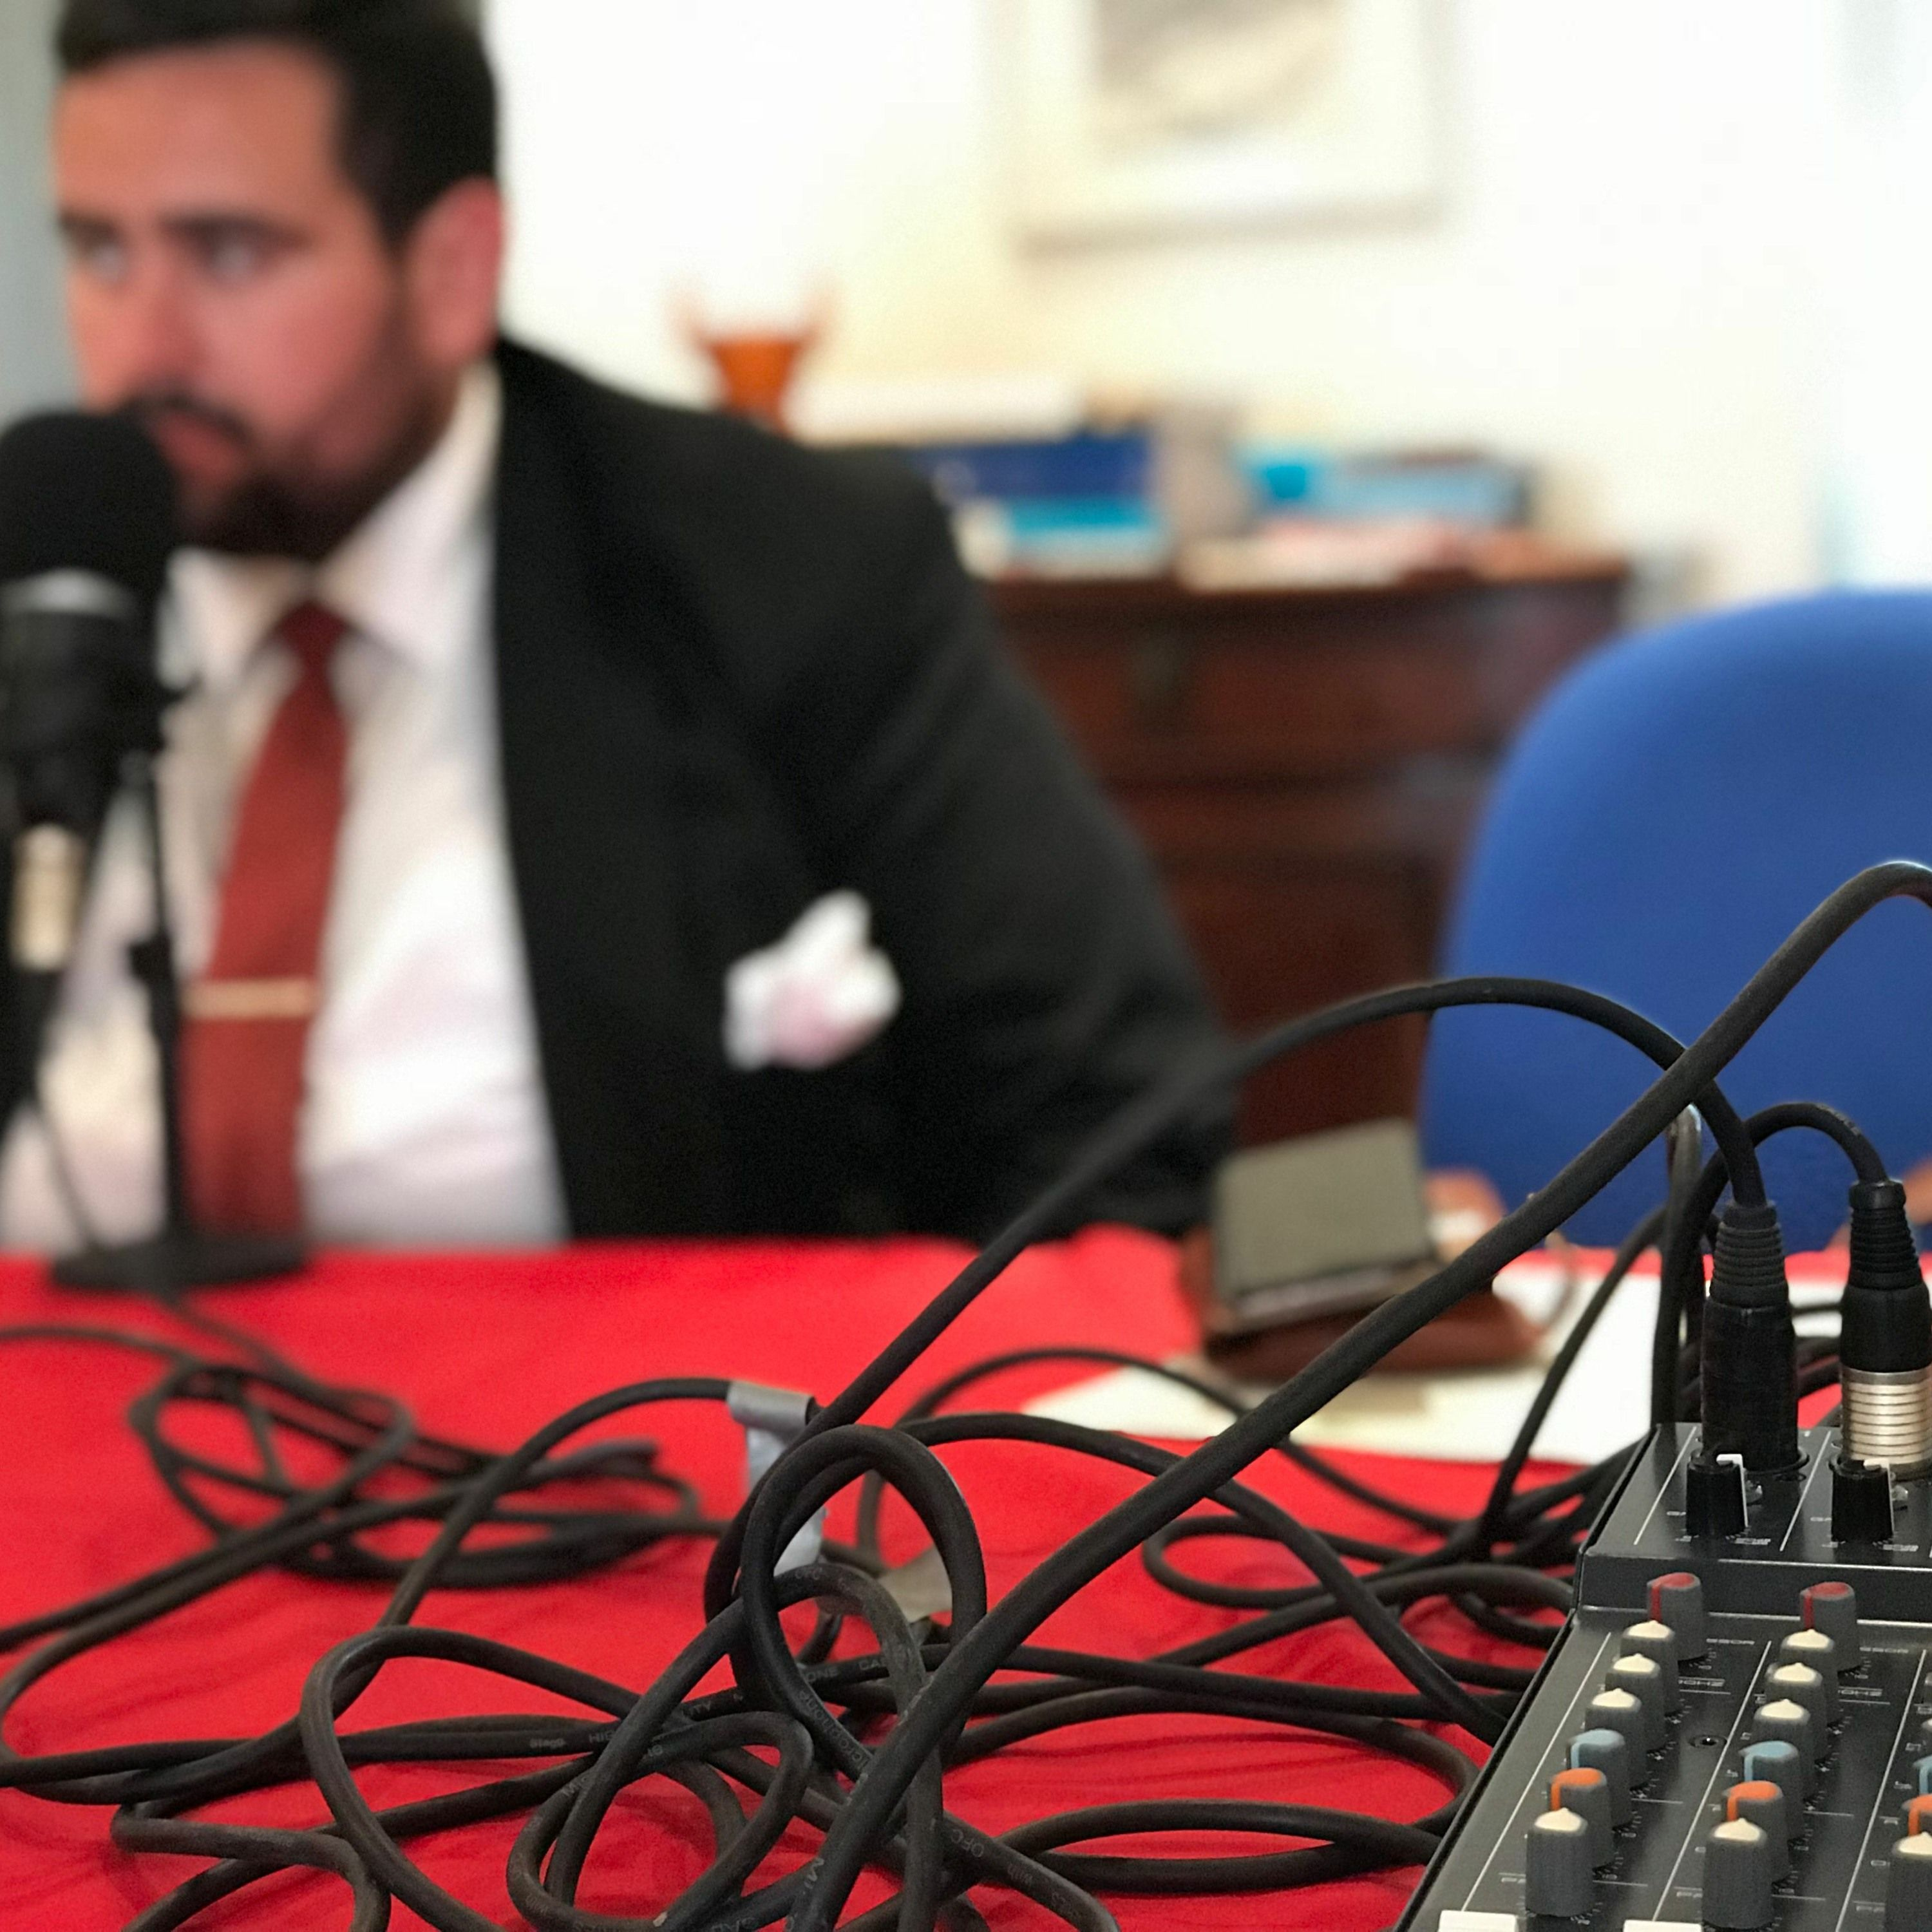 Brexit Podcast - Episode seven with John Mills and Brendan Chilton, hosted by David Price